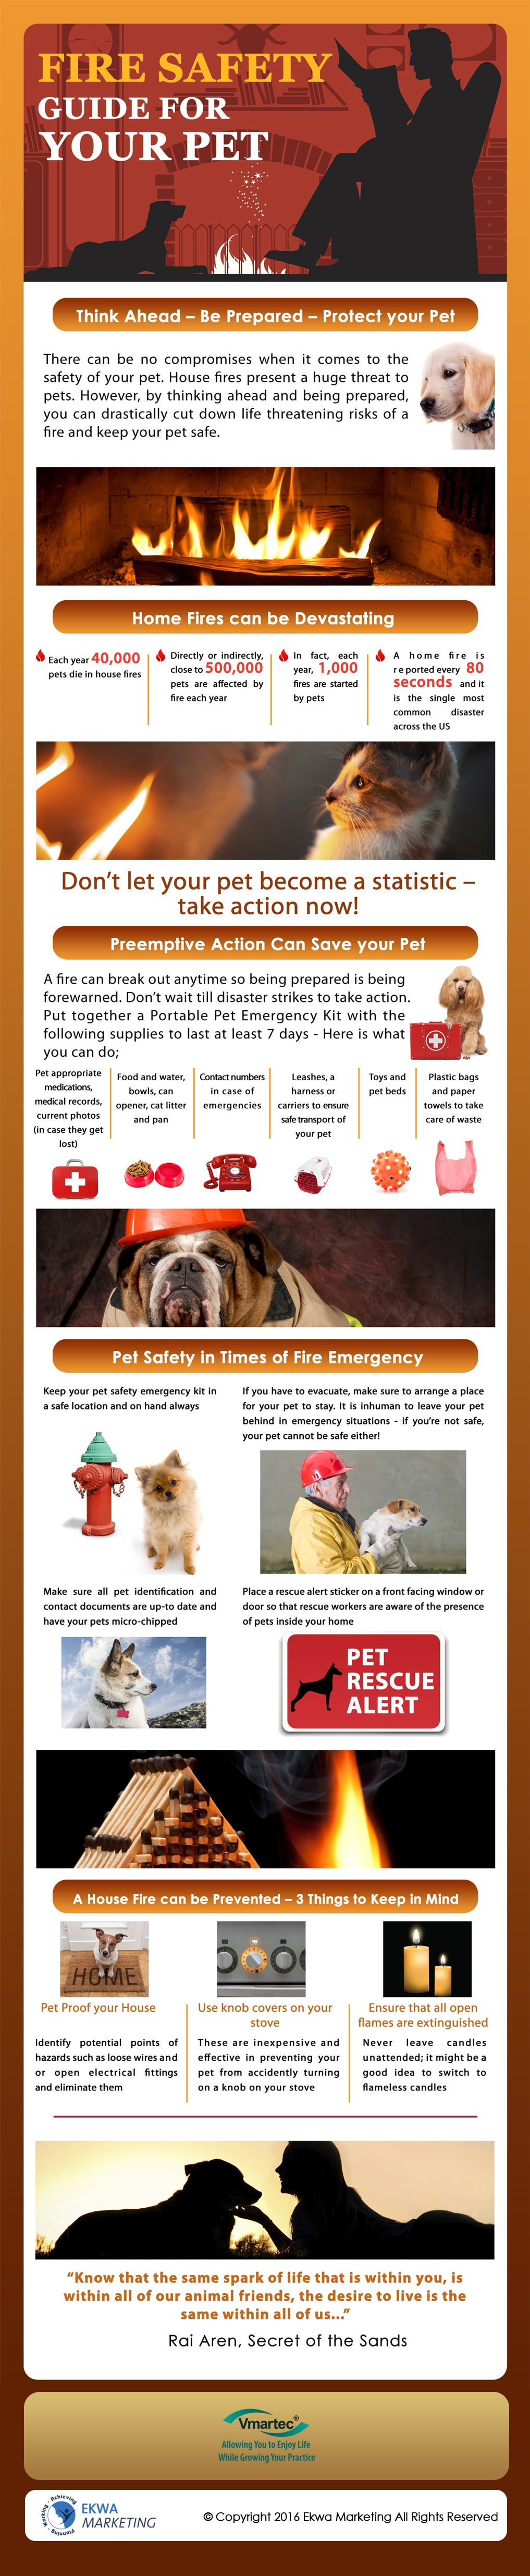 Vmartec, Fire safety guide for your pet